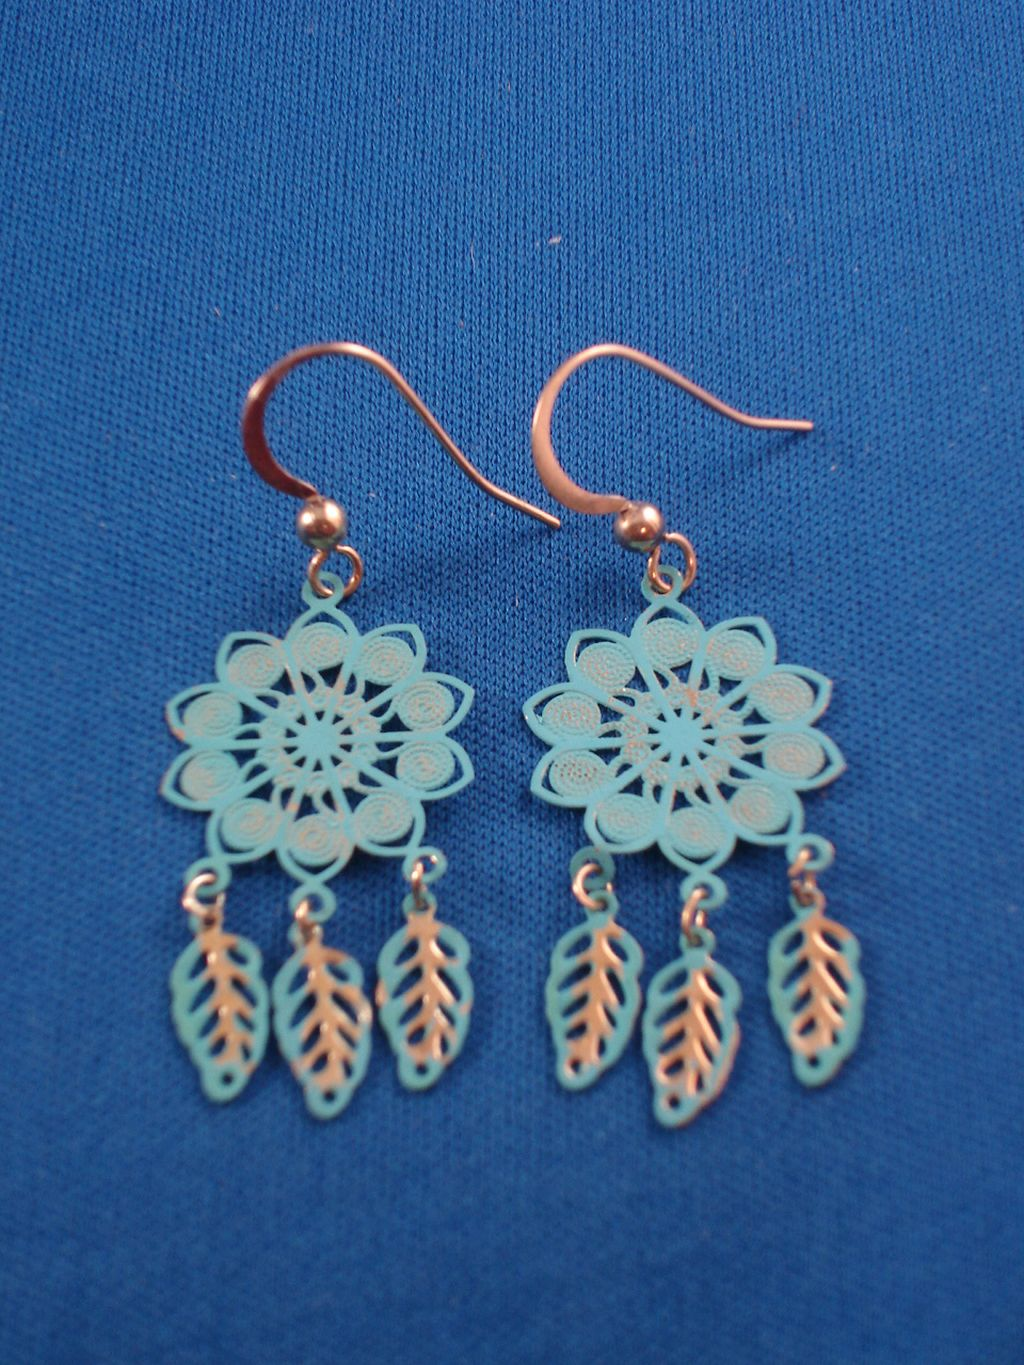 Turquoise Flower & Leaf Charms Filigree Earrings, Gold Tone Anti-allergic Metal